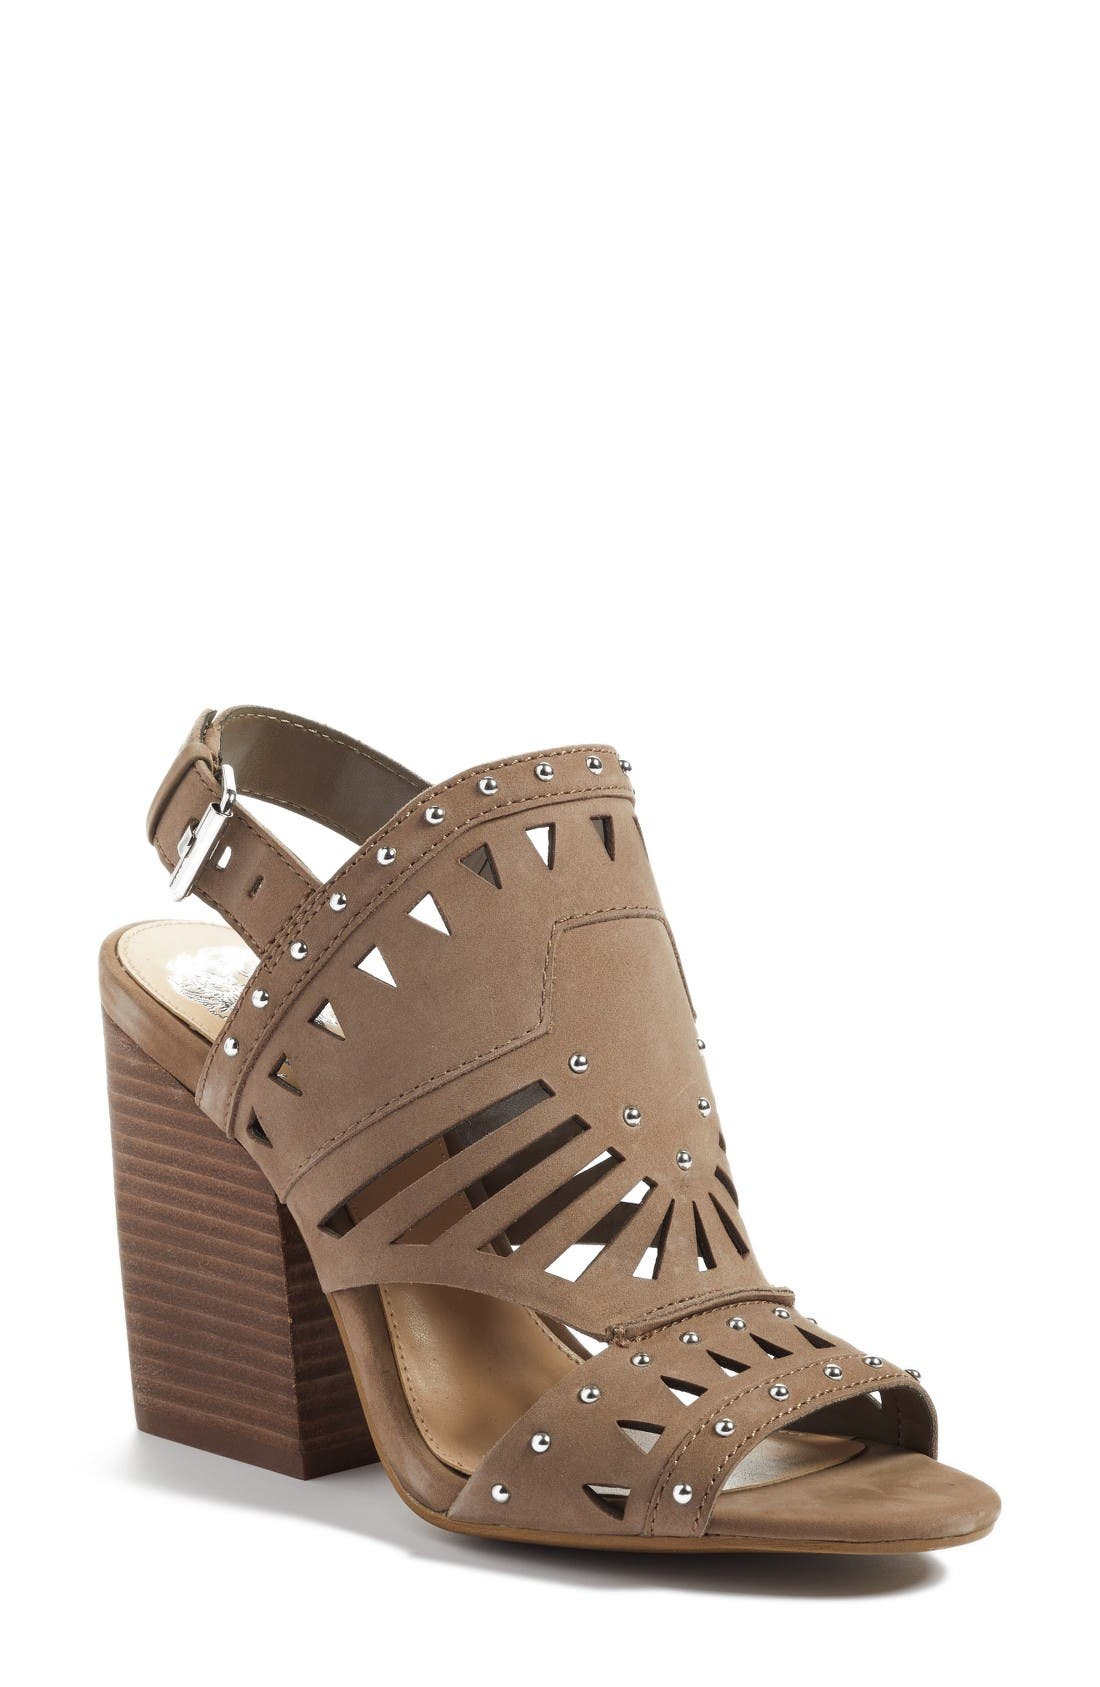 Vince Camuto Reston Sandal (Women)